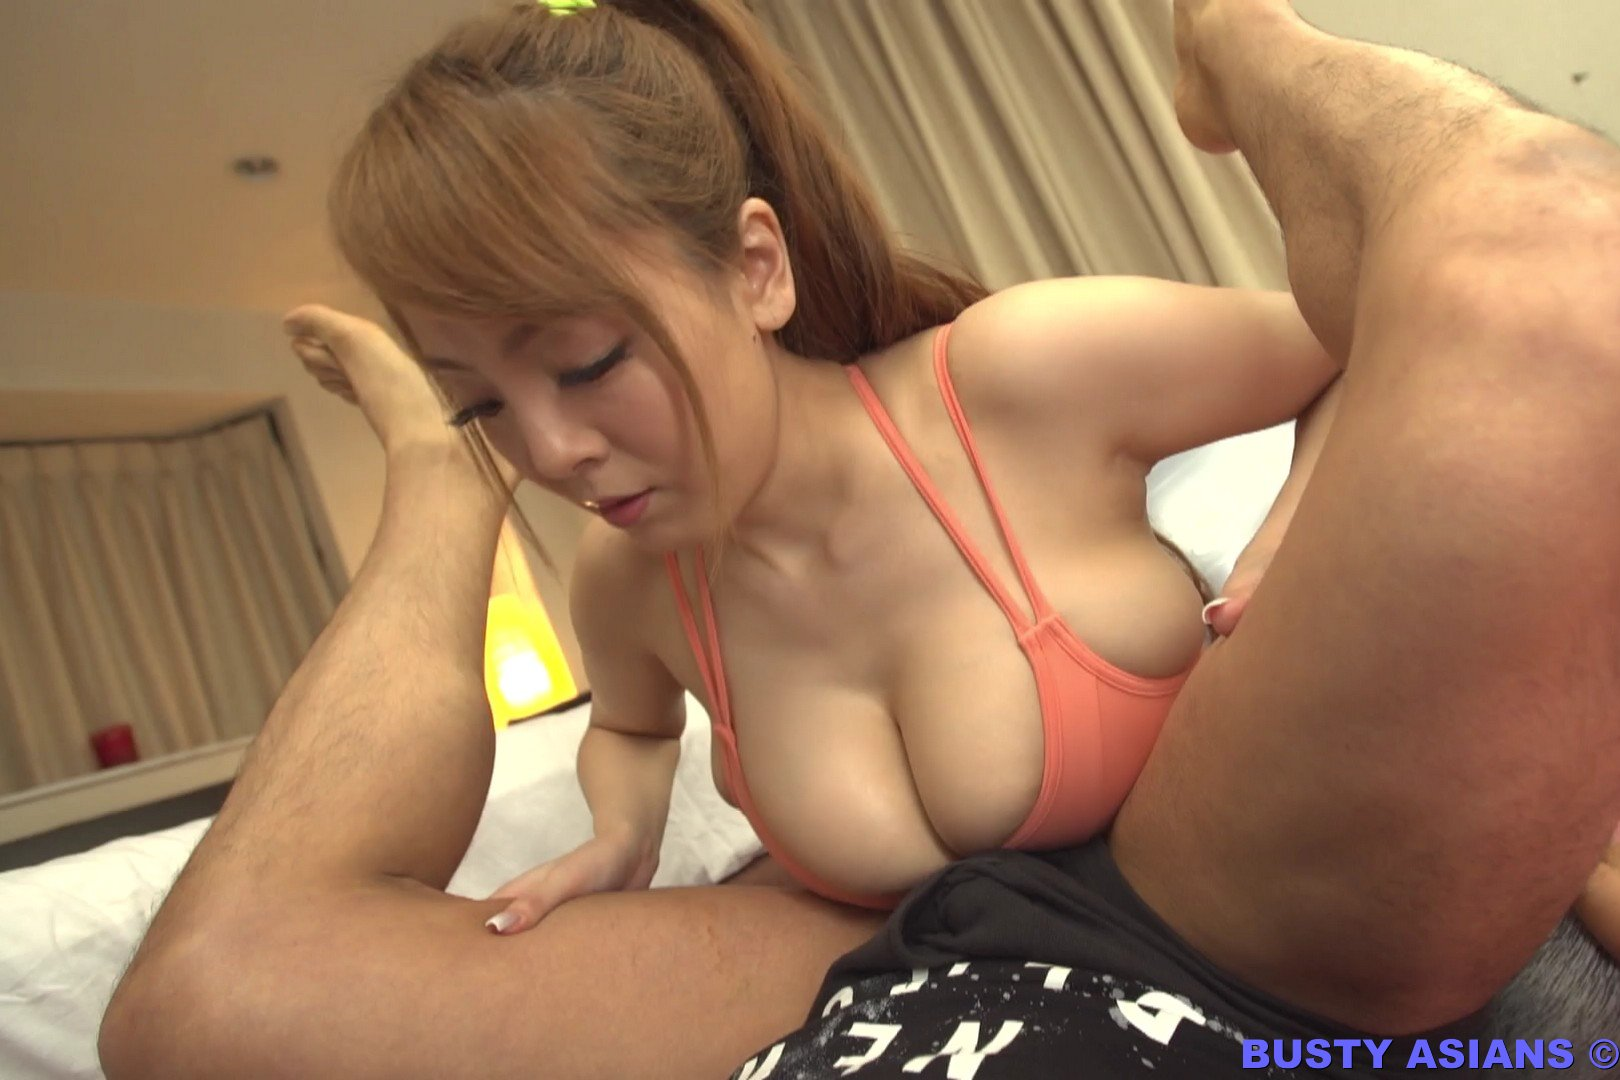 preview image password  for busty-asians.com